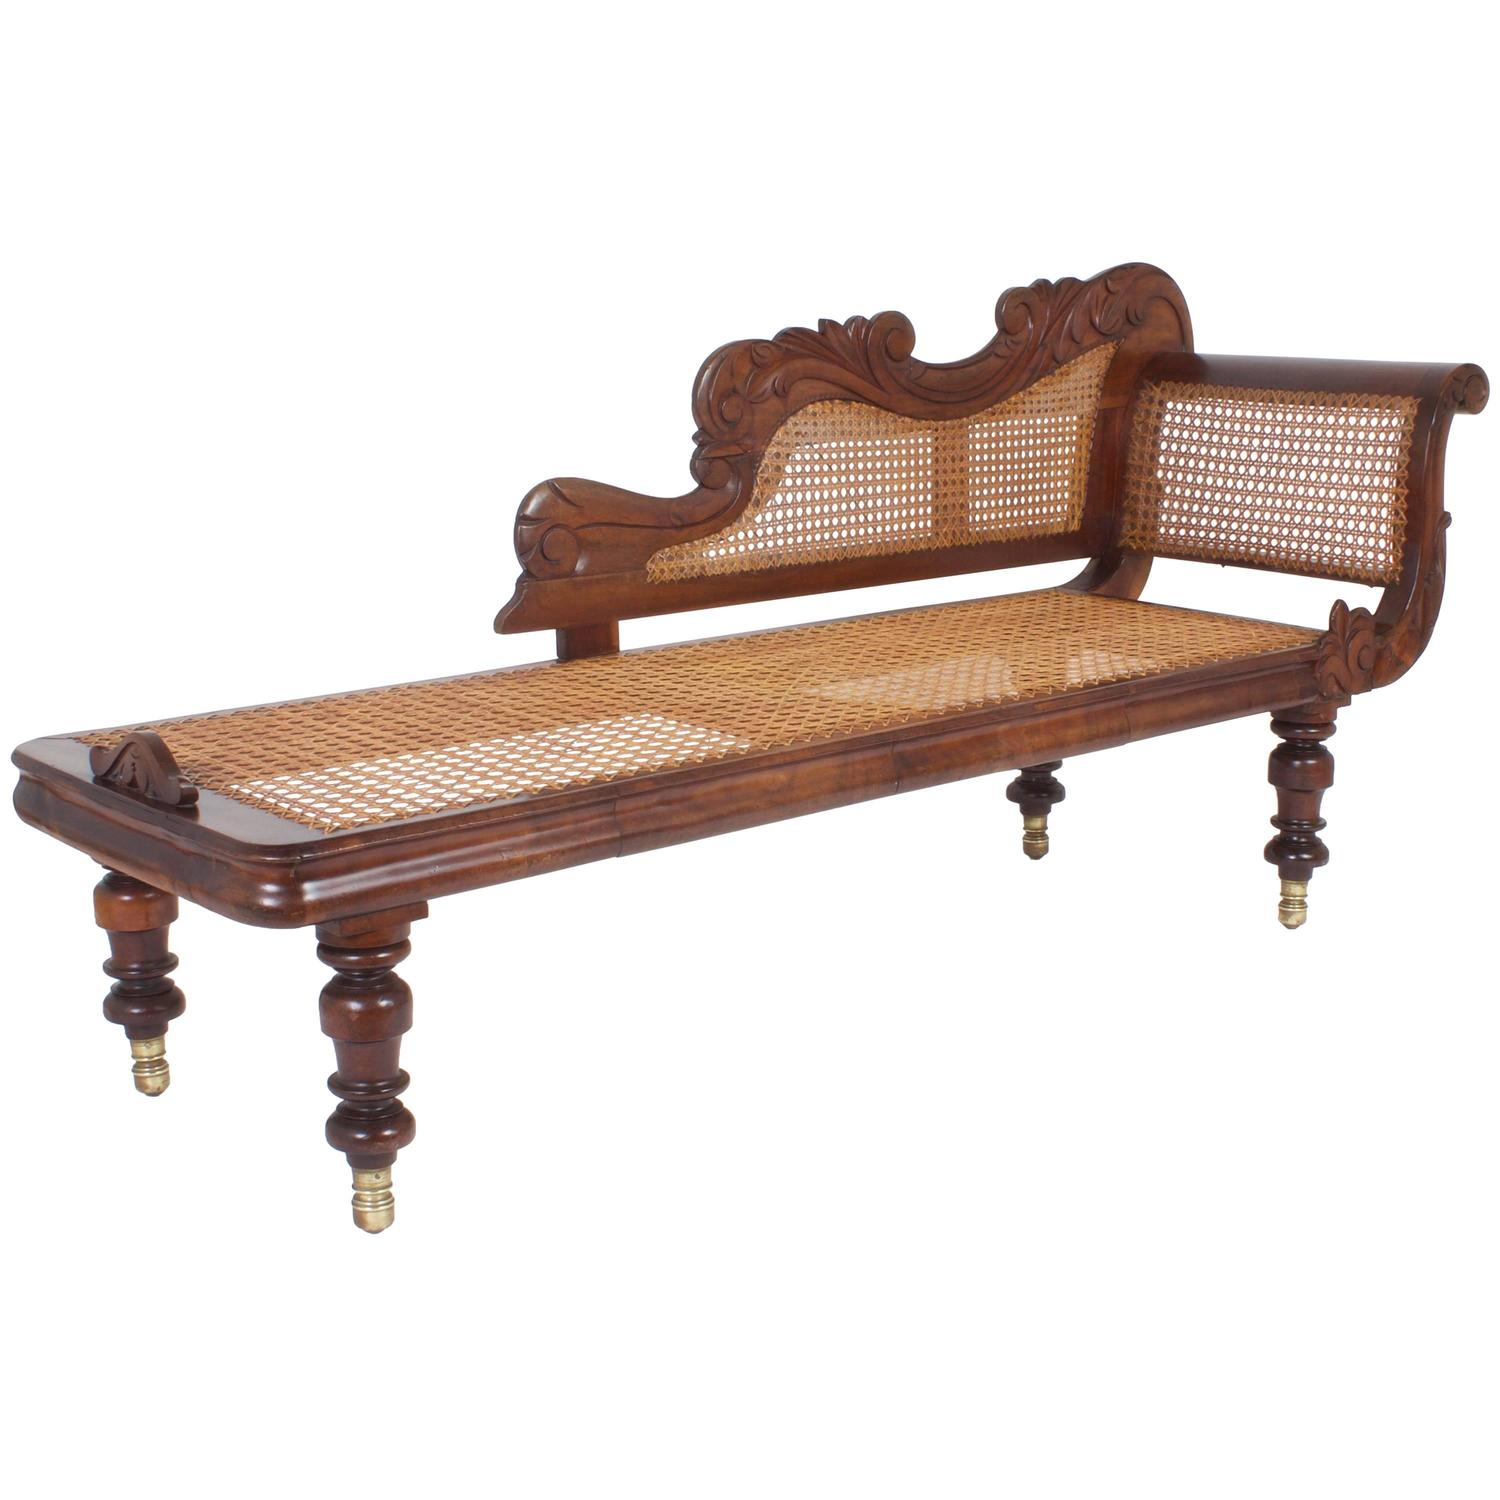 British colonial mahogany antique chaise longue at 1stdibs for Chaise lounge antique furniture